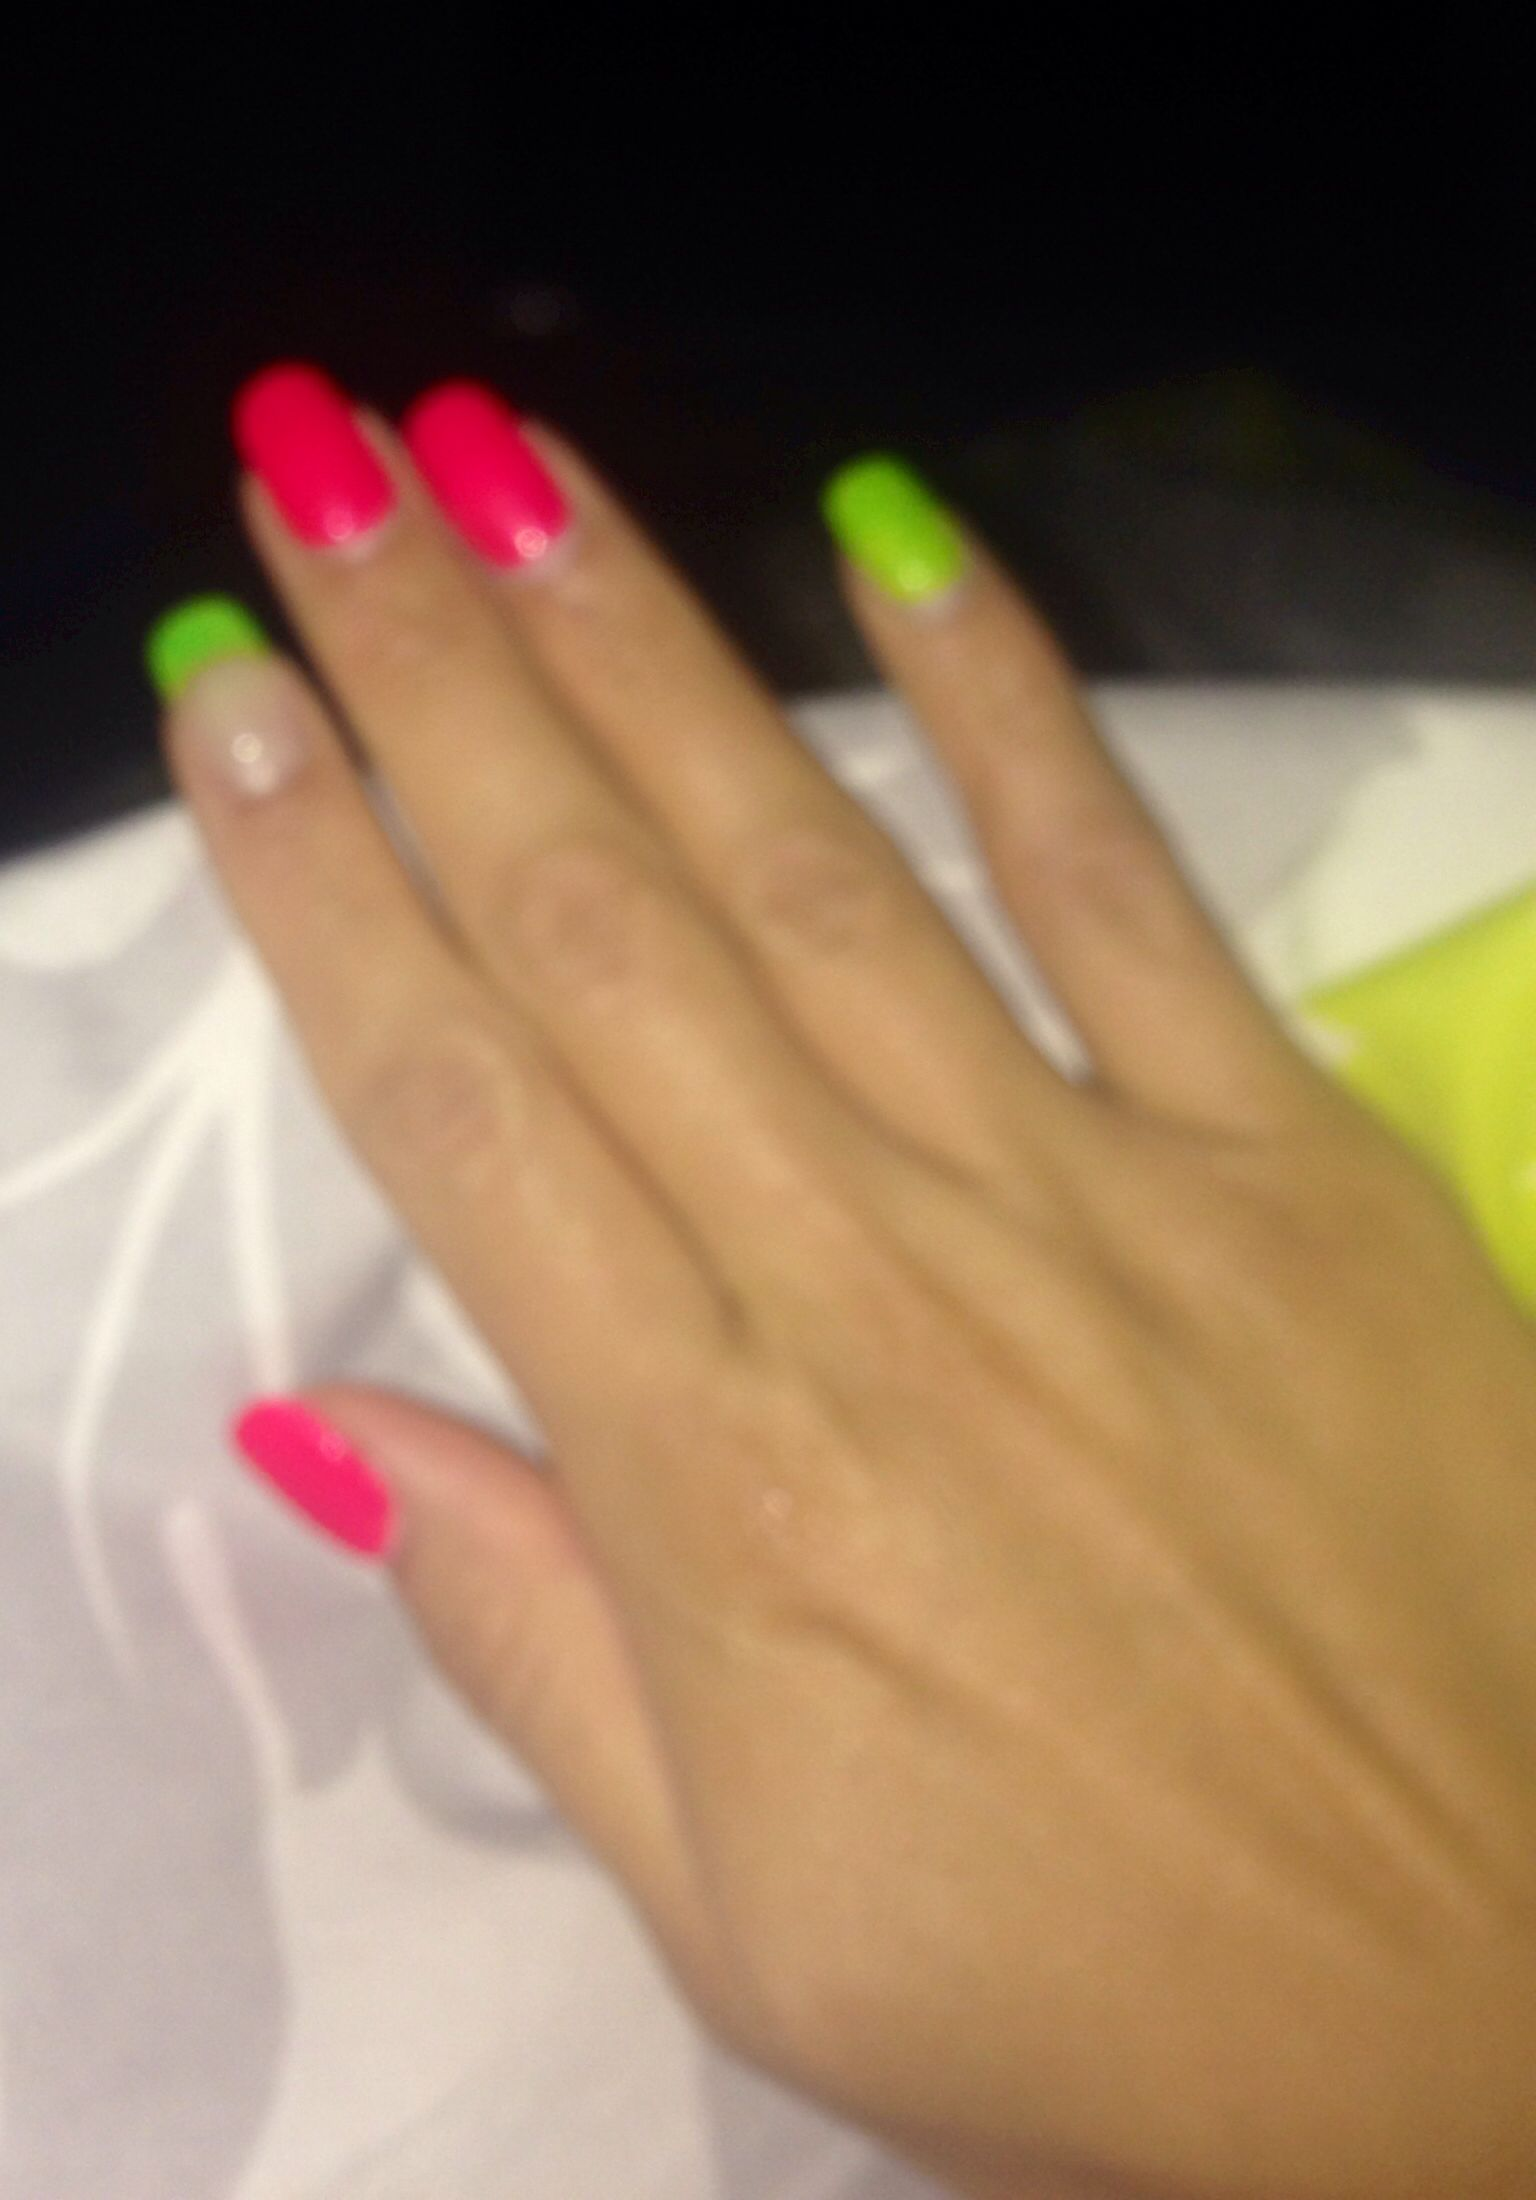 Acrygel Plus Gel Polish Looks So Awesome Summer Nail Colors